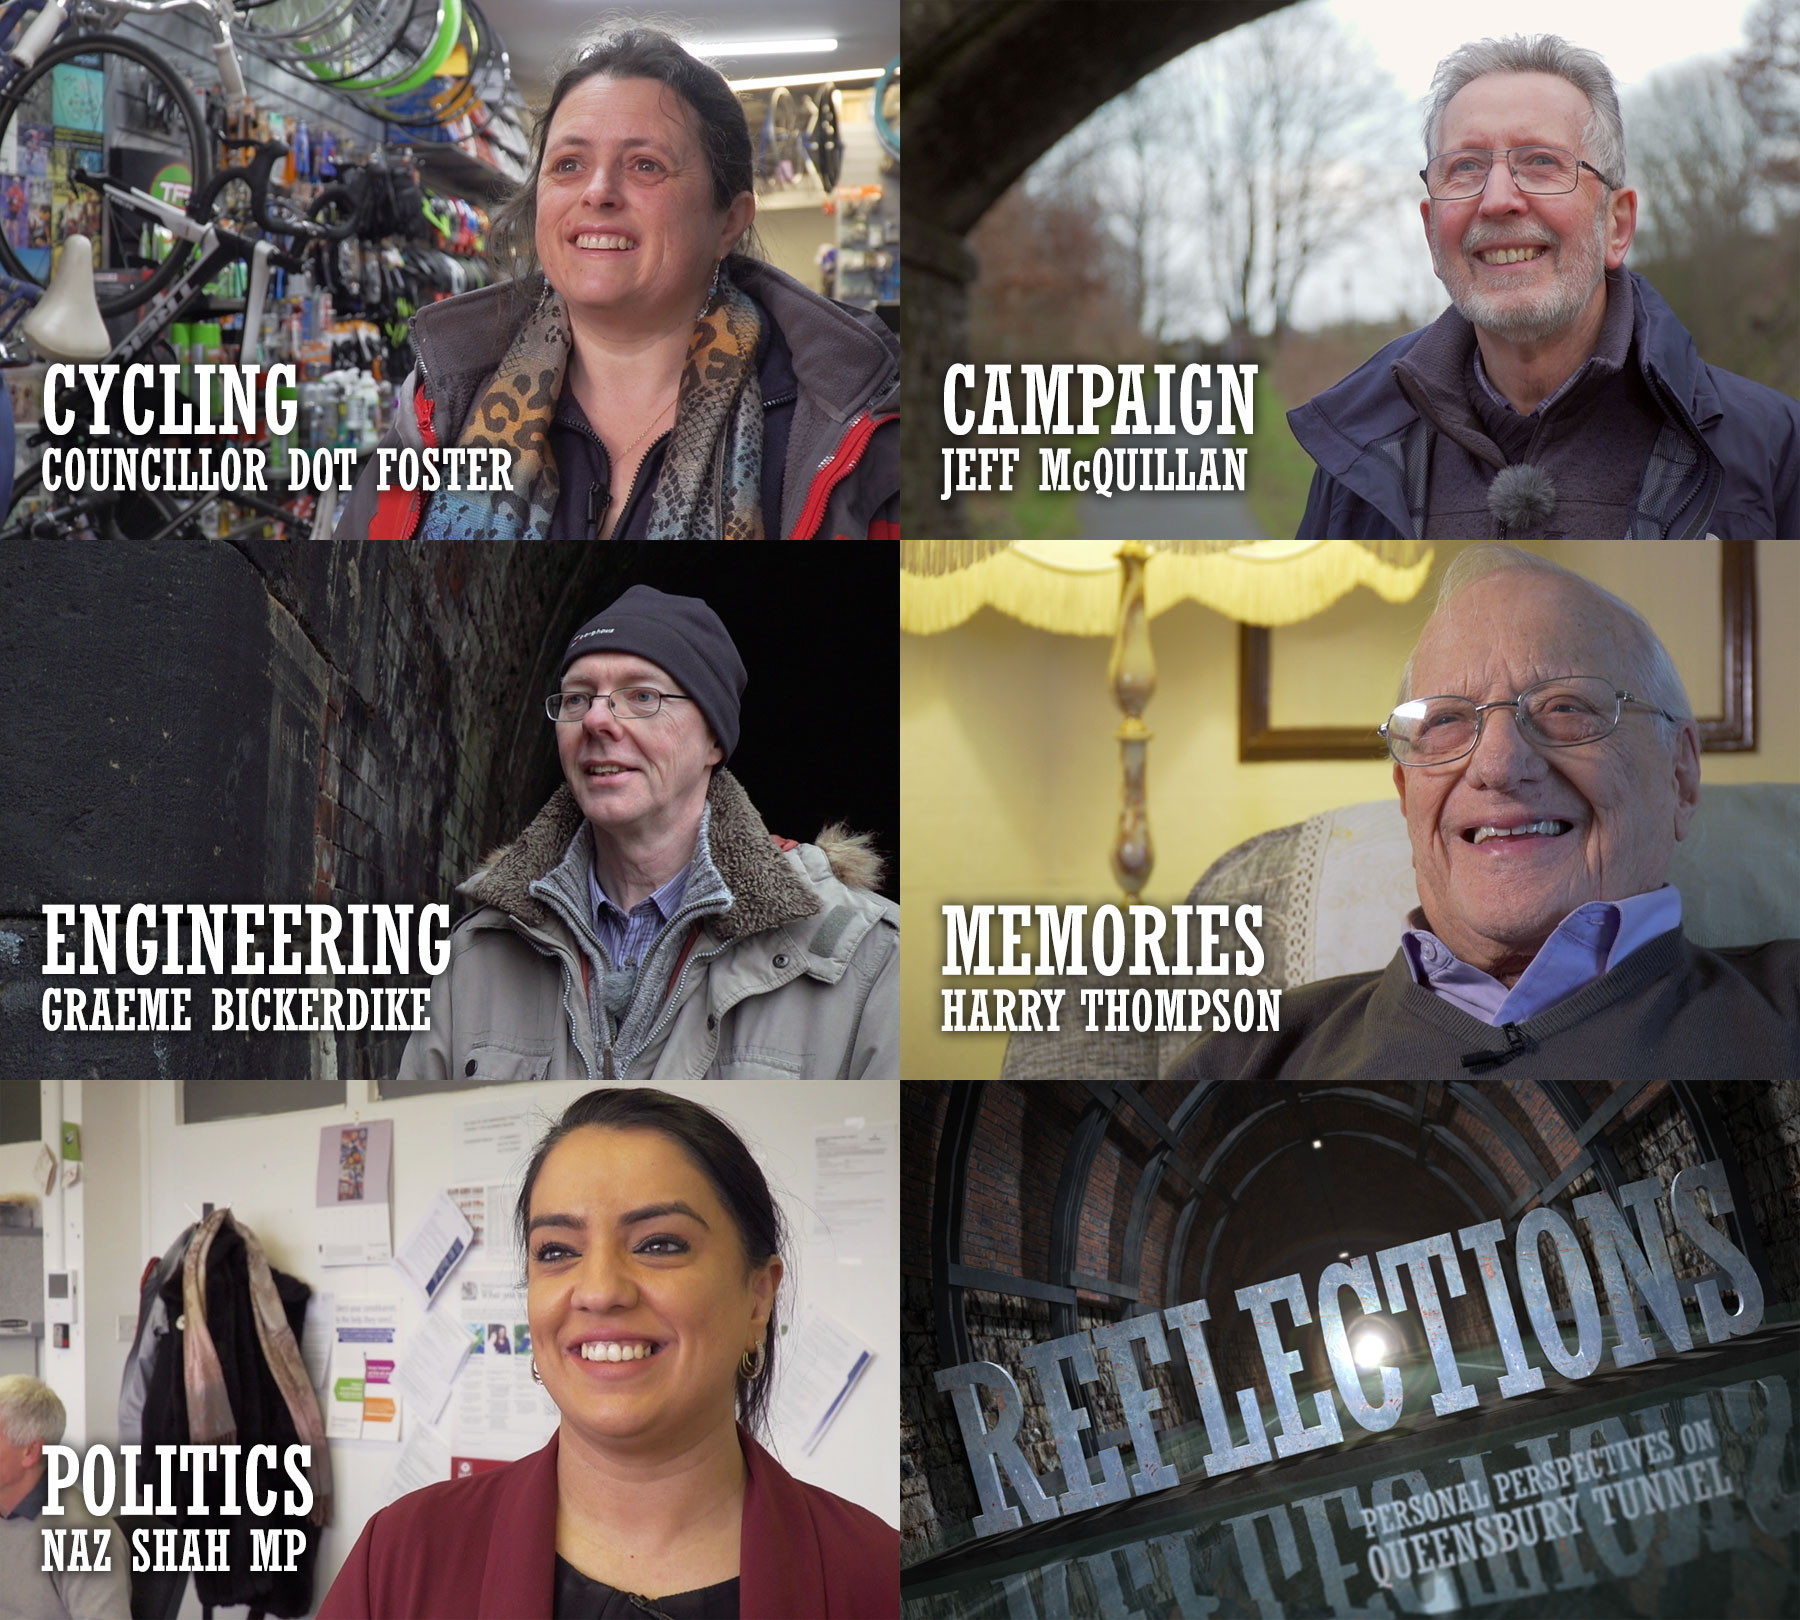 Five videos have been produced as part of the tunnel campaign